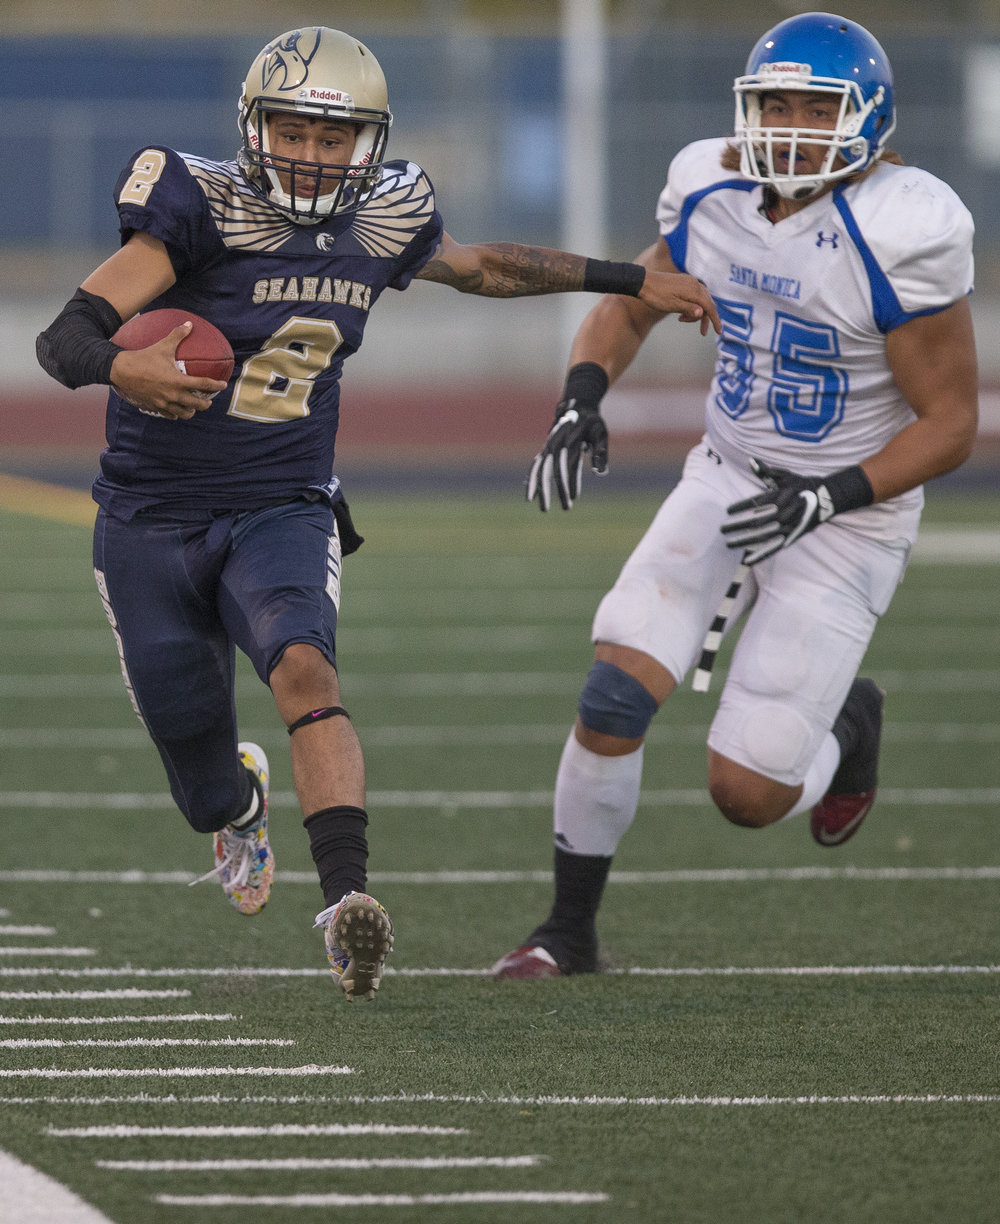 The Santa Monica College Corsairs Mens football defensive lineman Luta Mailoto (55) (white,right) runs The LA Harbor College Seahawks quarterback Demetrius Reed (2) (blue,left) out of bounds, Saturday, September 30th, 2017, at LA Harbor College in San Pedro, CA. The Corsairs loose to the Seahawks 28-21. (Daniel Bowyer/Corsair Staff)